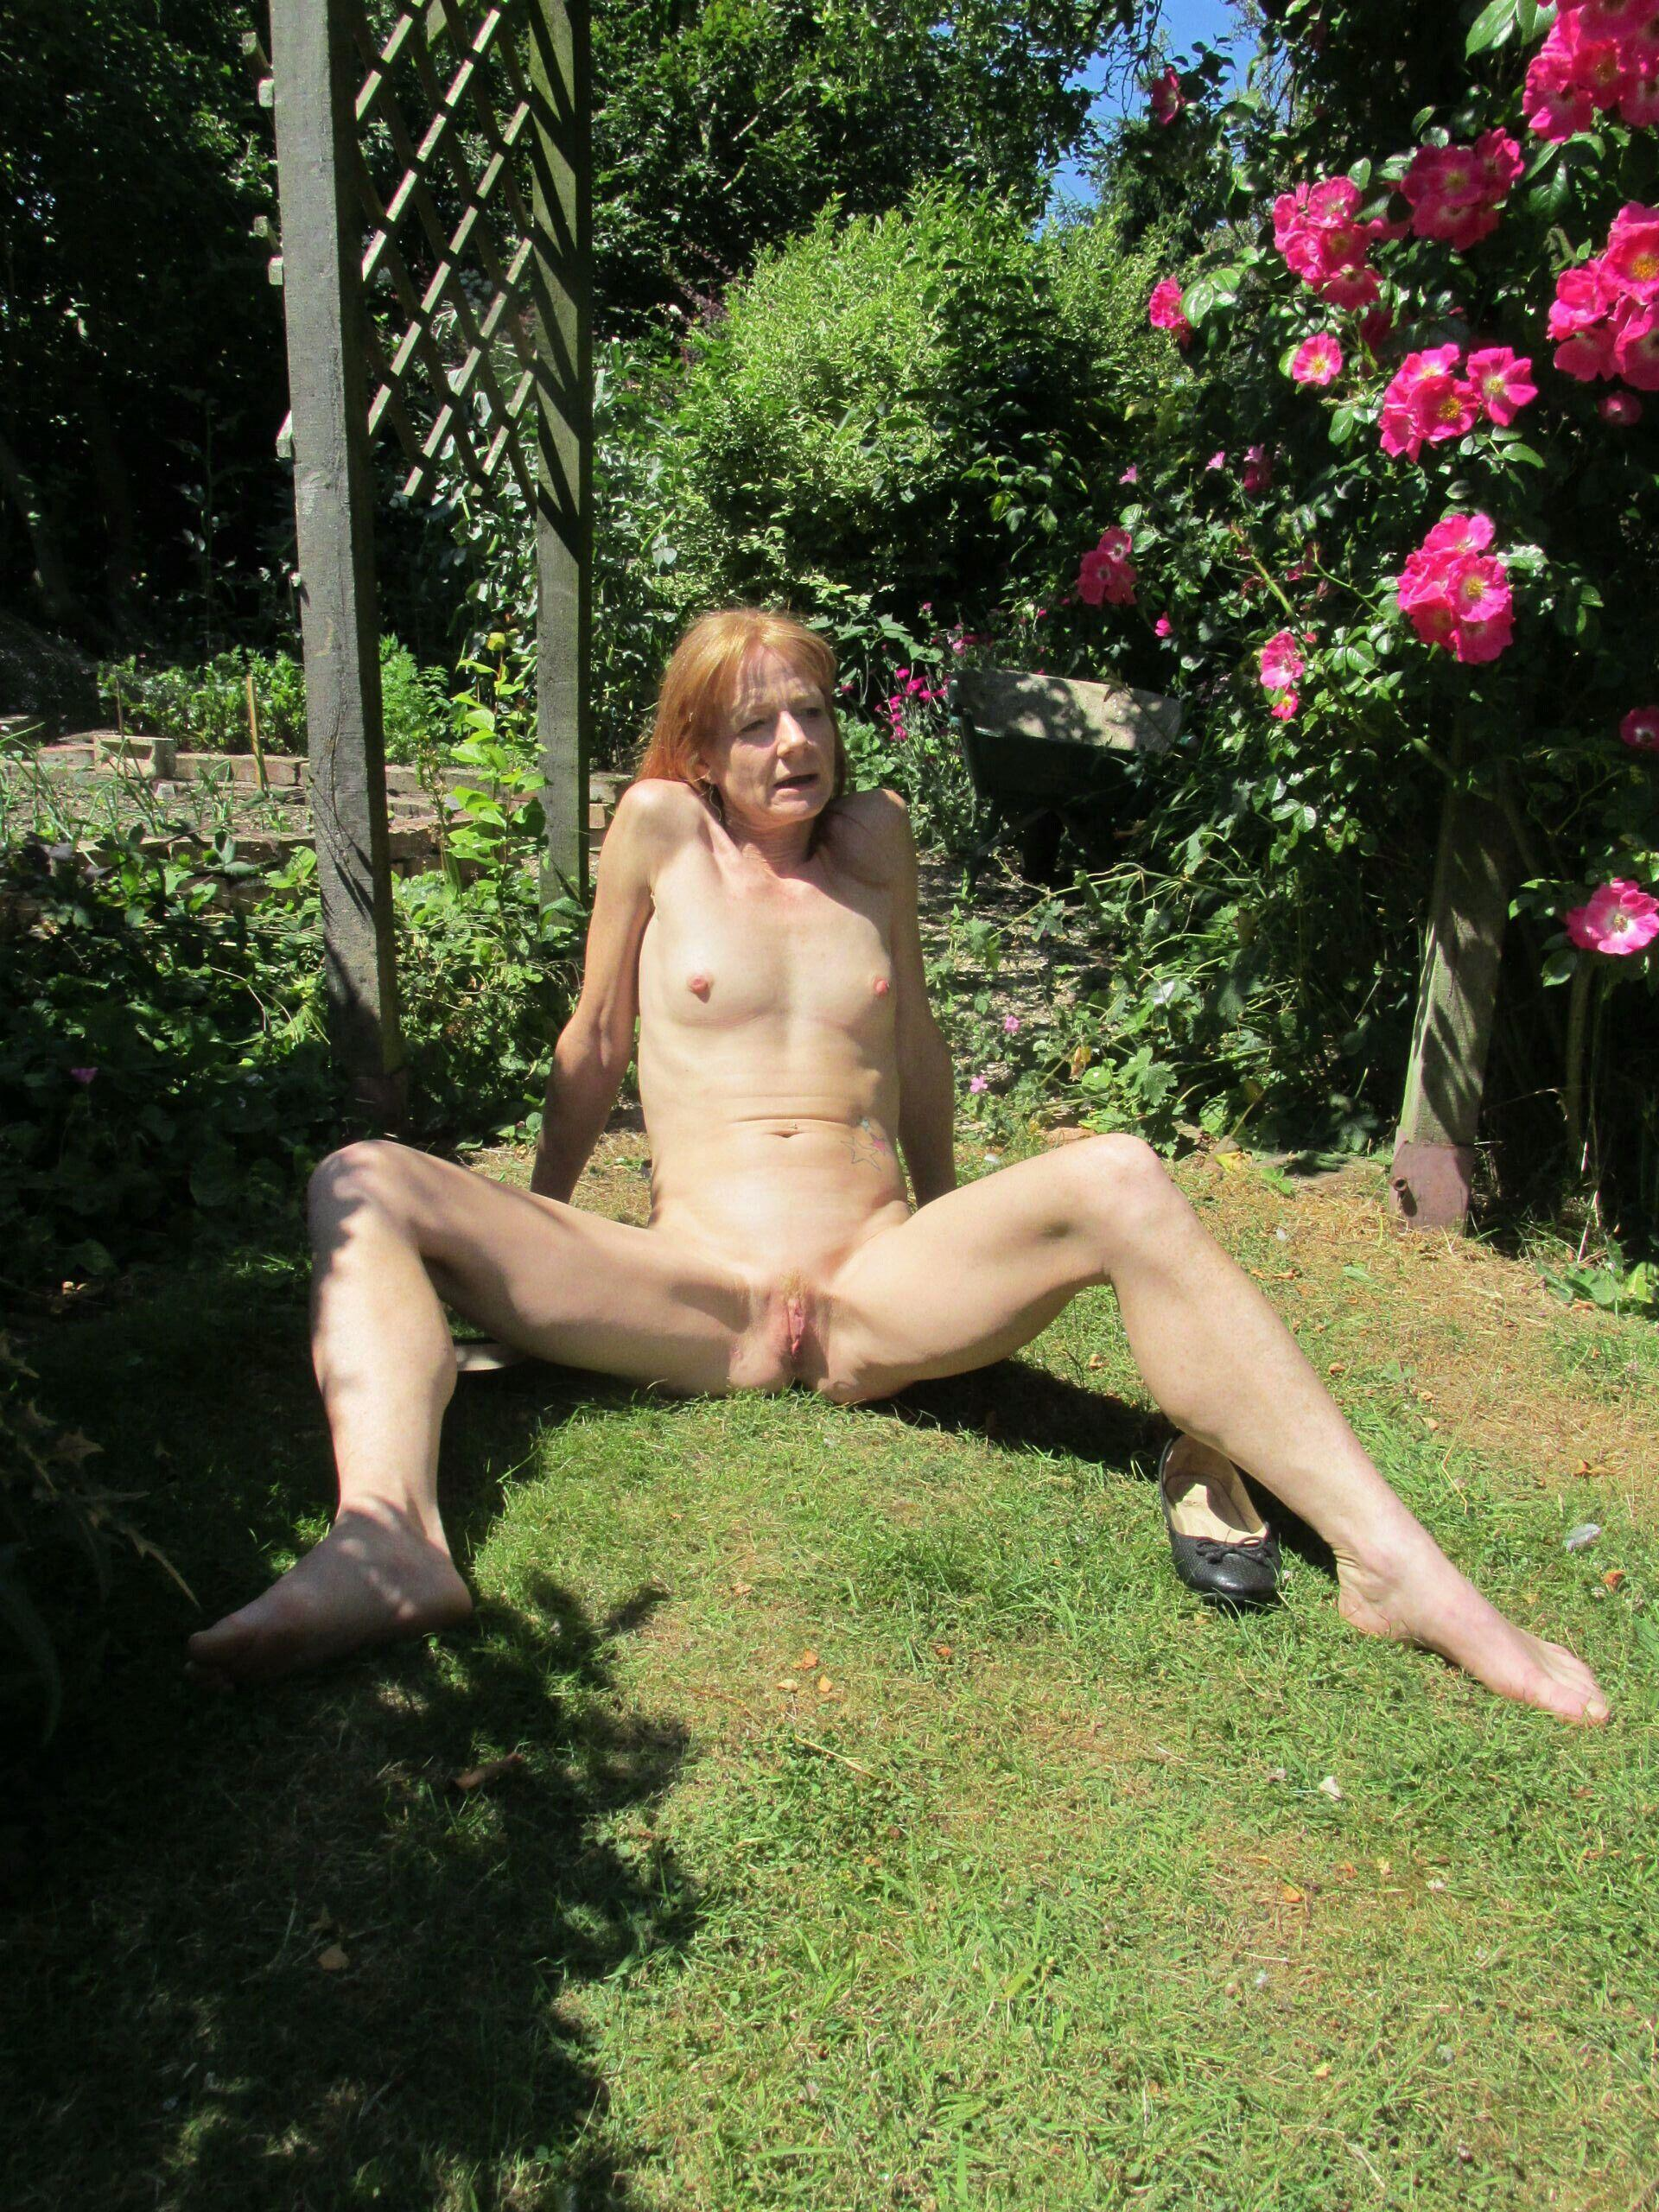 In the garden with a mature slut. real nudity public nudity mature